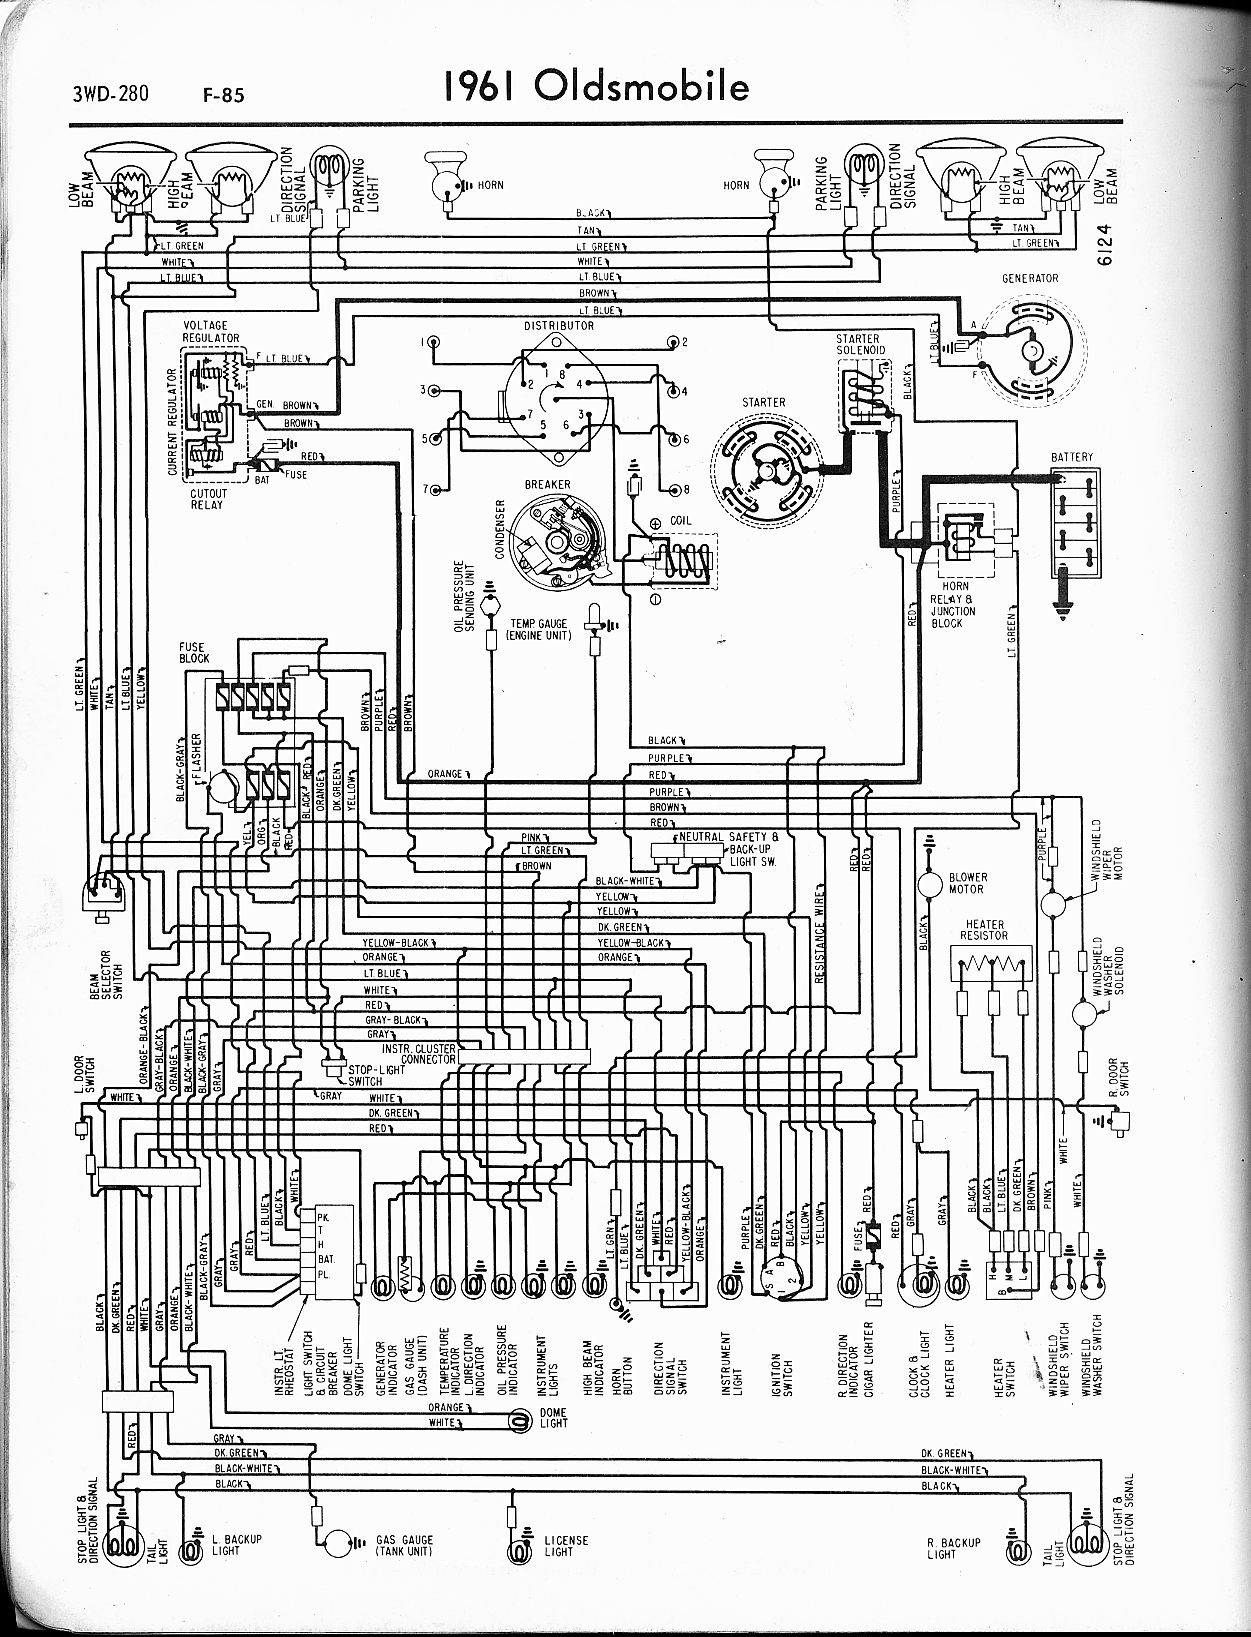 MWire5765 280 oldsmobile wiring diagrams the old car manual project 1967 olds 442 wiring diagram at gsmx.co